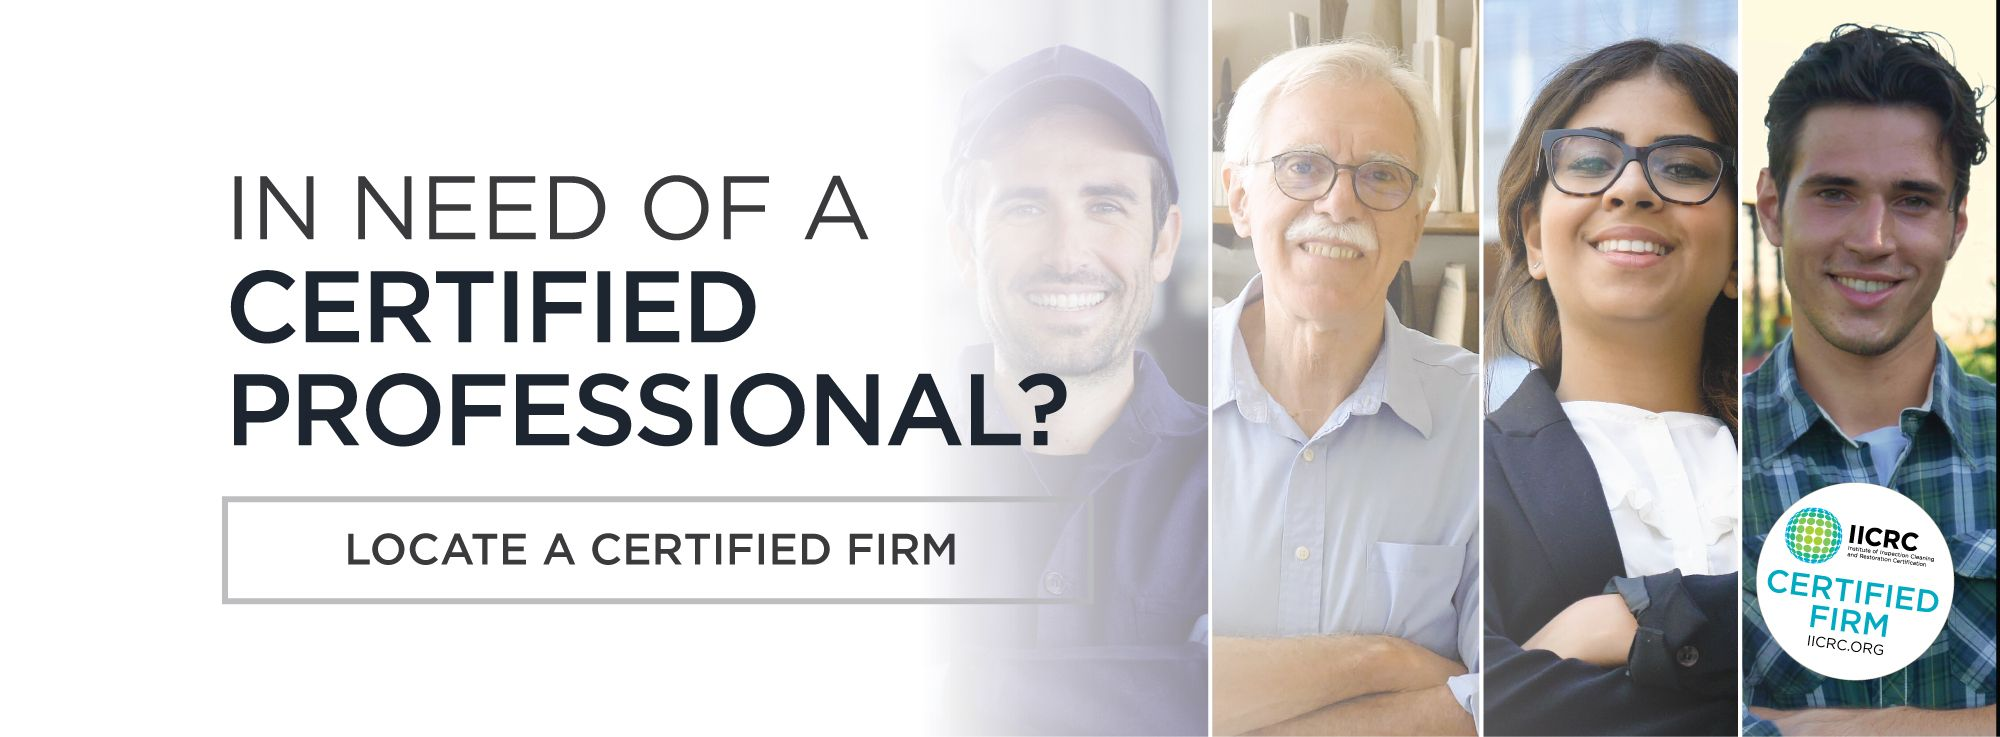 Iicrc mold remediation certifies professionals toxic mold